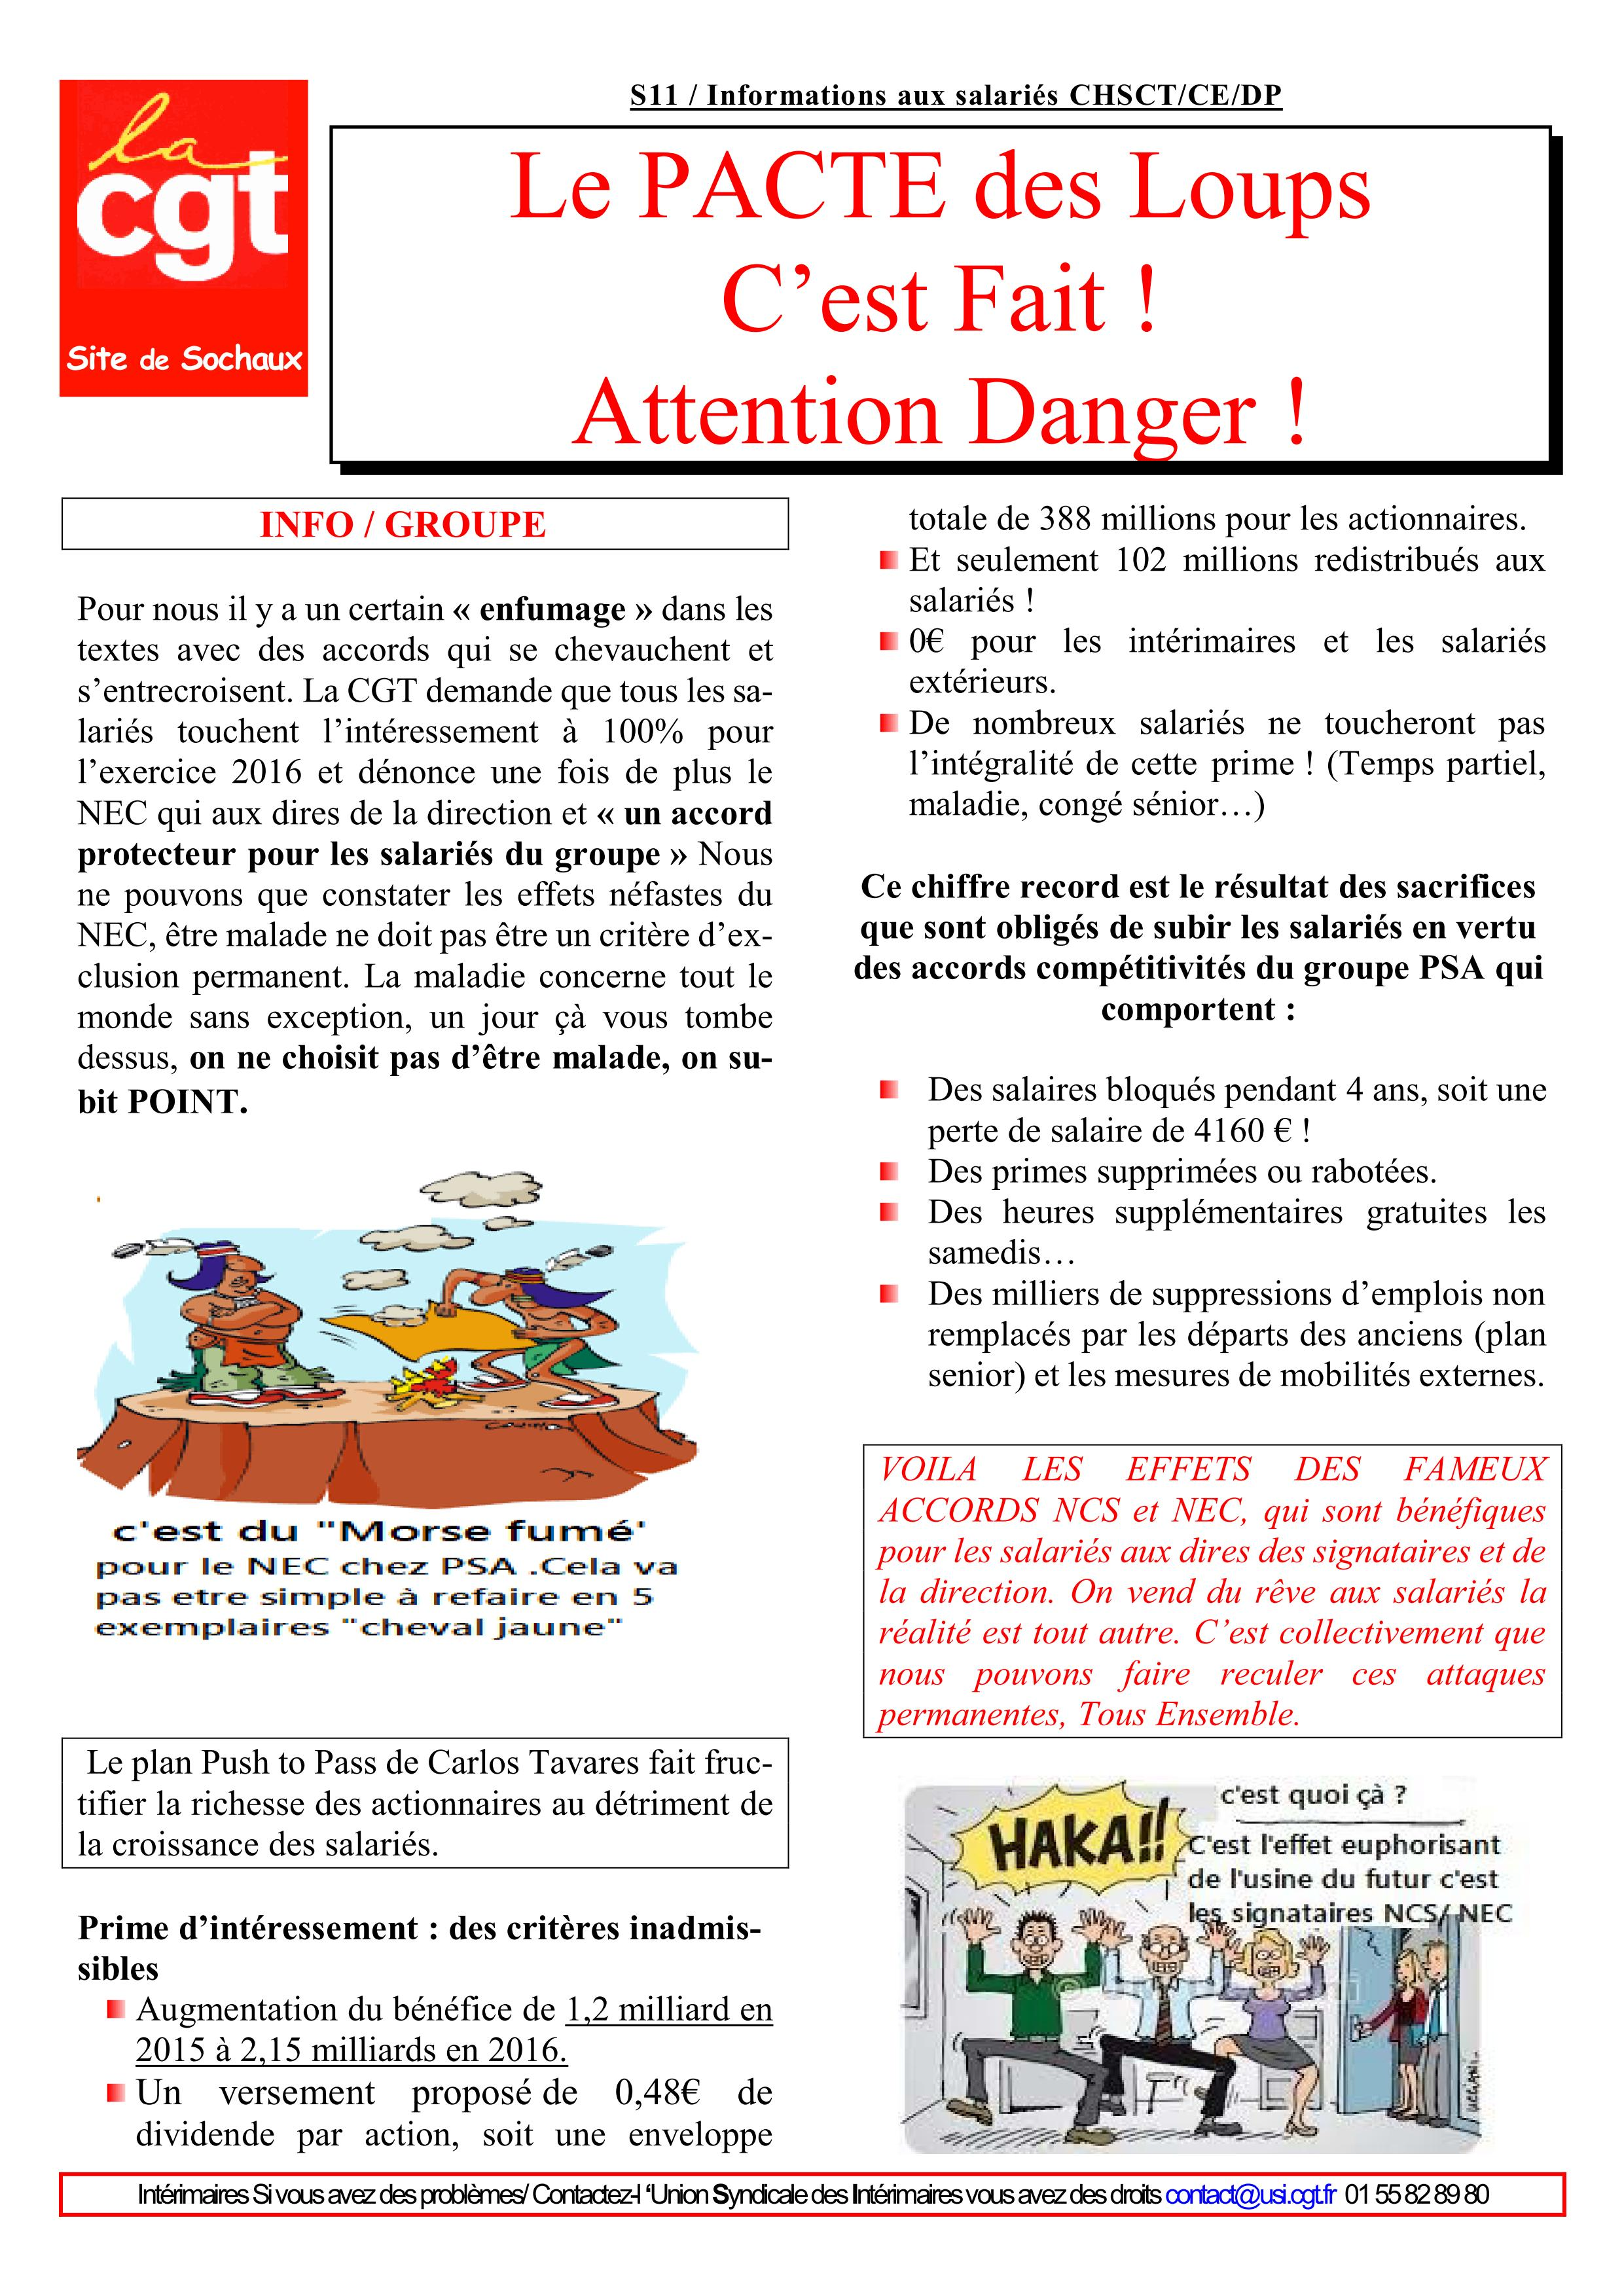 Tract 2017 S11 Le Pacte Des Loups Cest Fait Attention